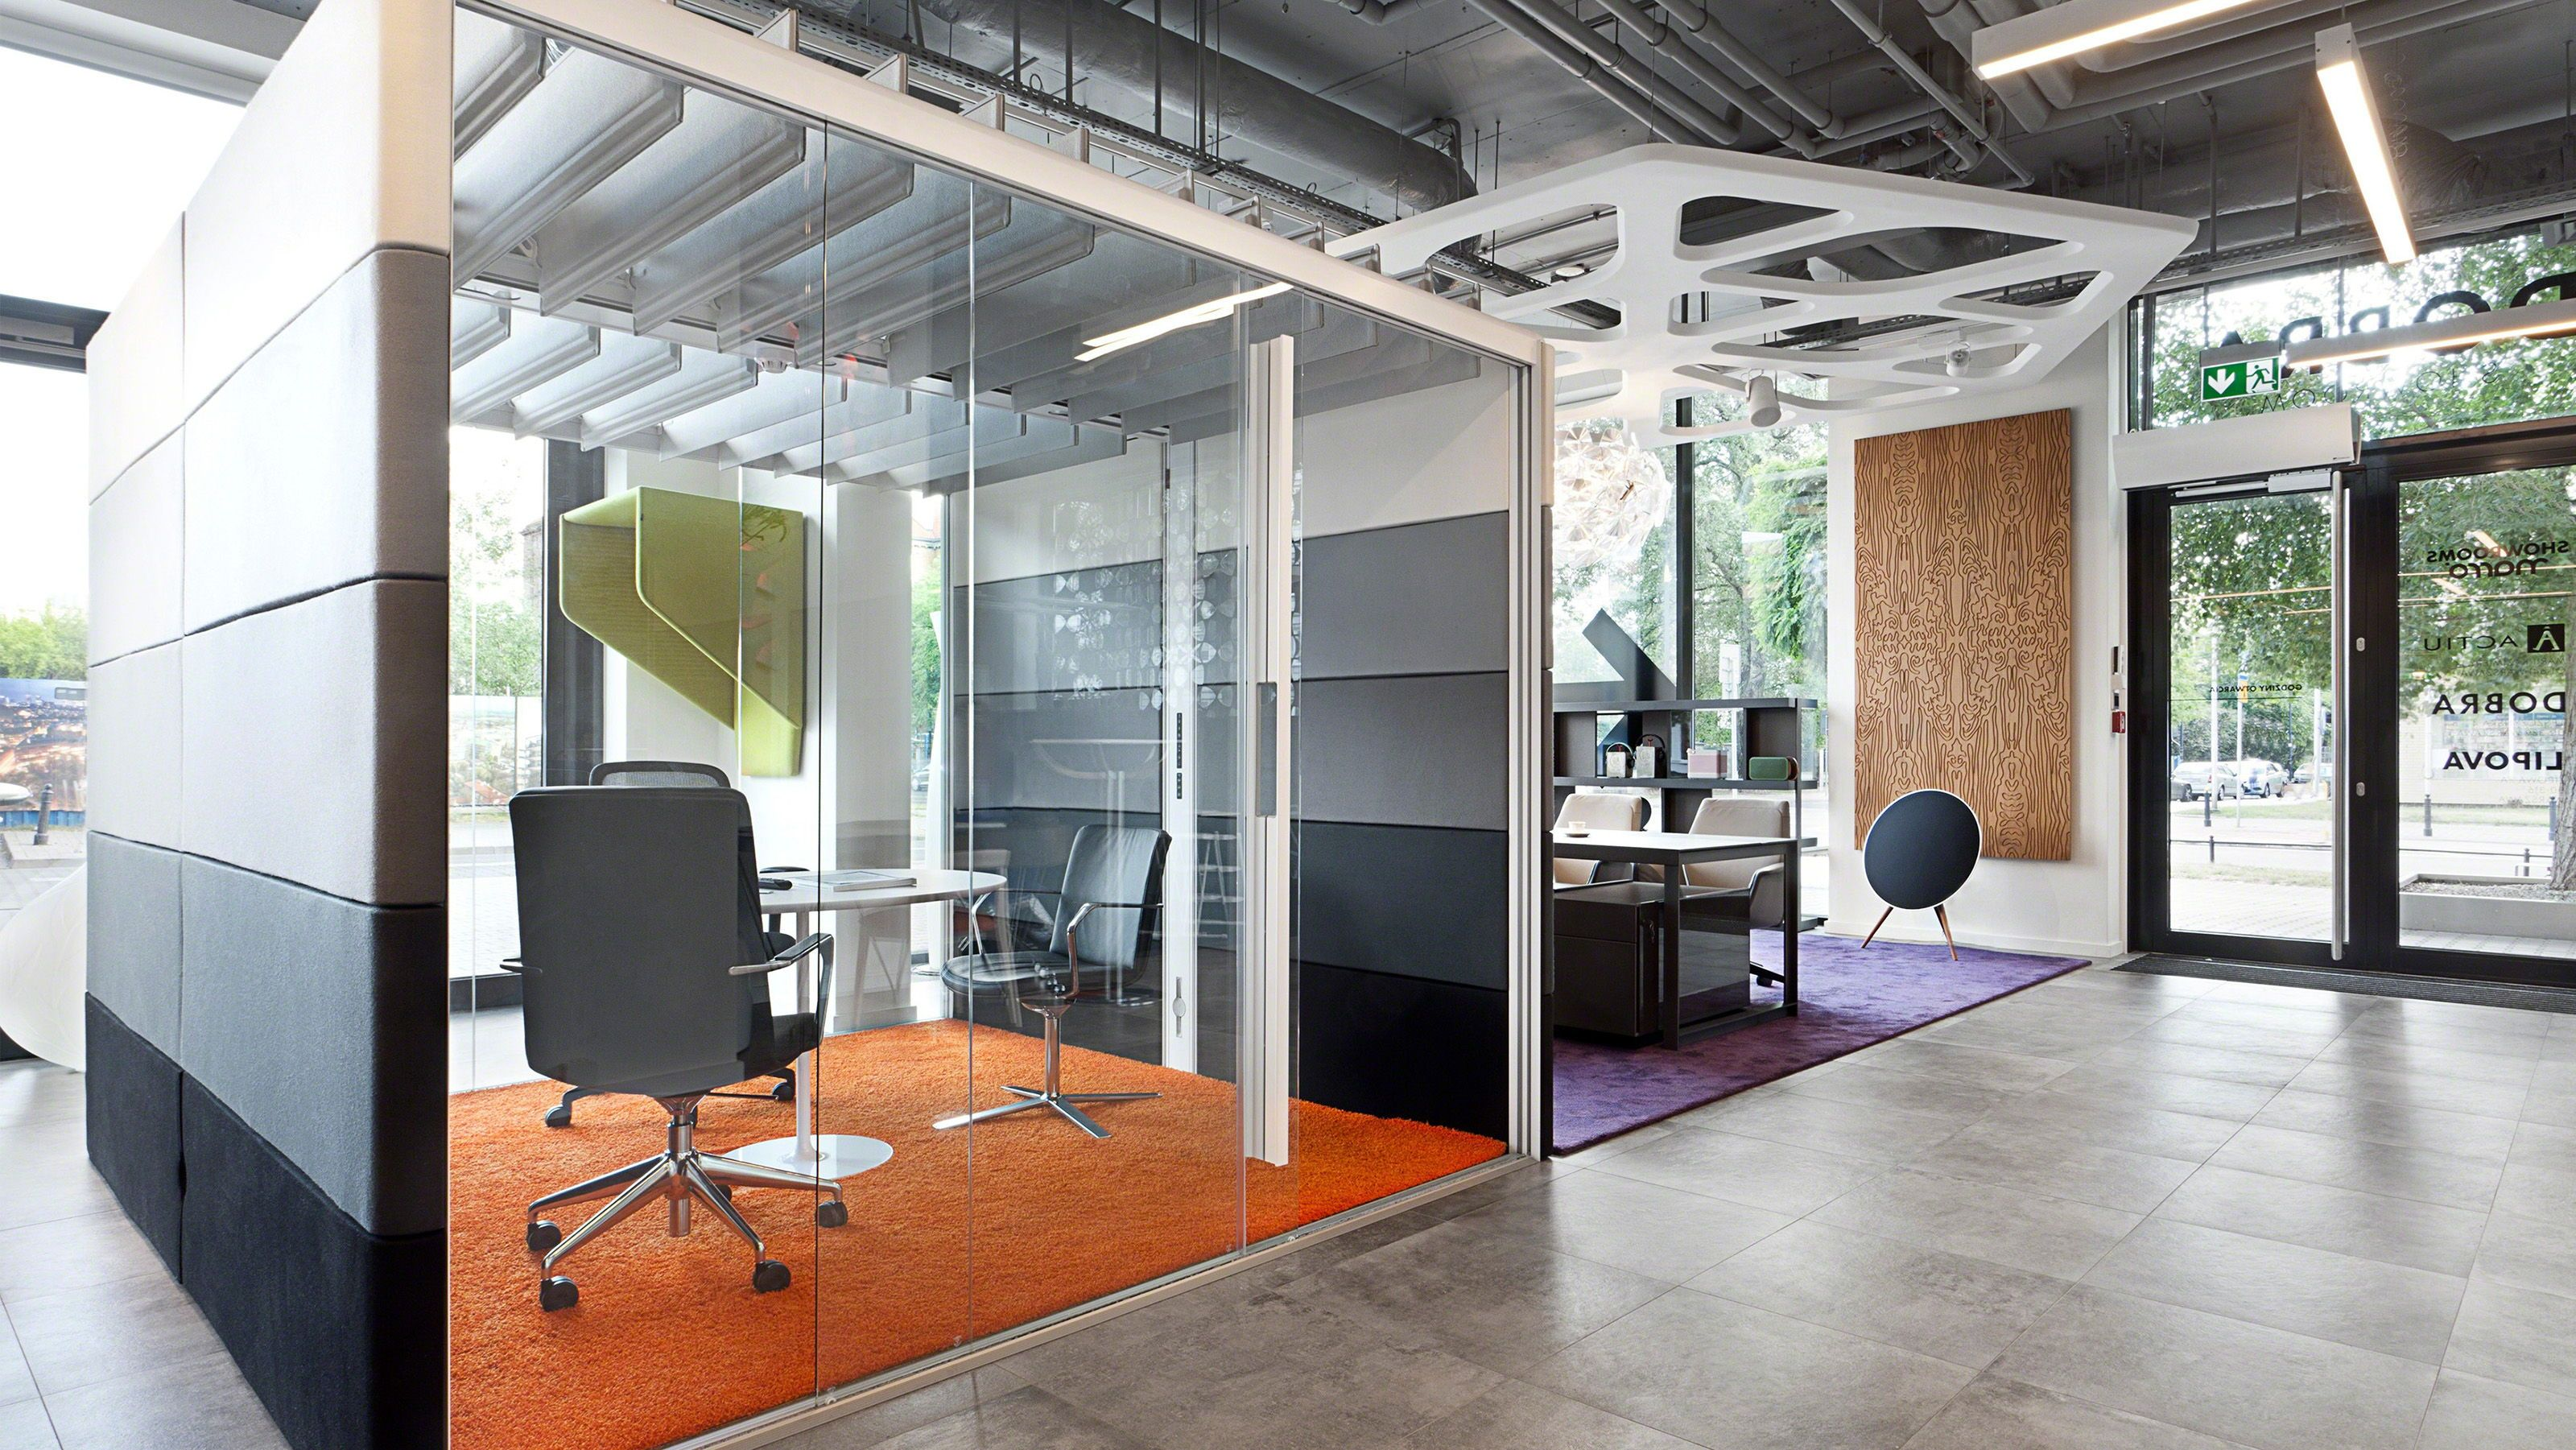 Wondrous Air3 Quiet Spaces Modern Office Design Office Pods Home Interior And Landscaping Eliaenasavecom